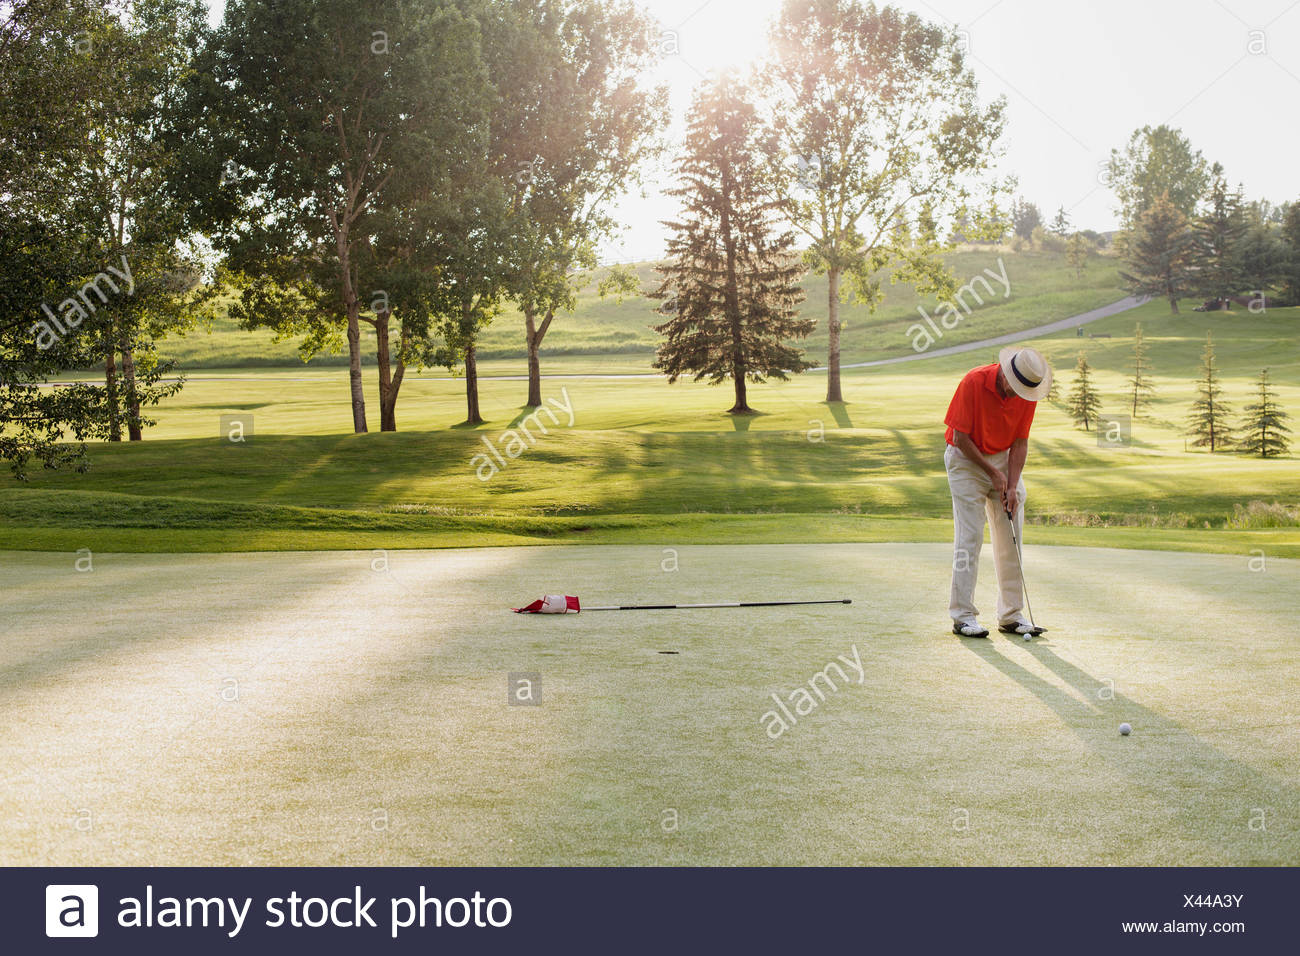 senior man about to putt on golf green - Stock Image